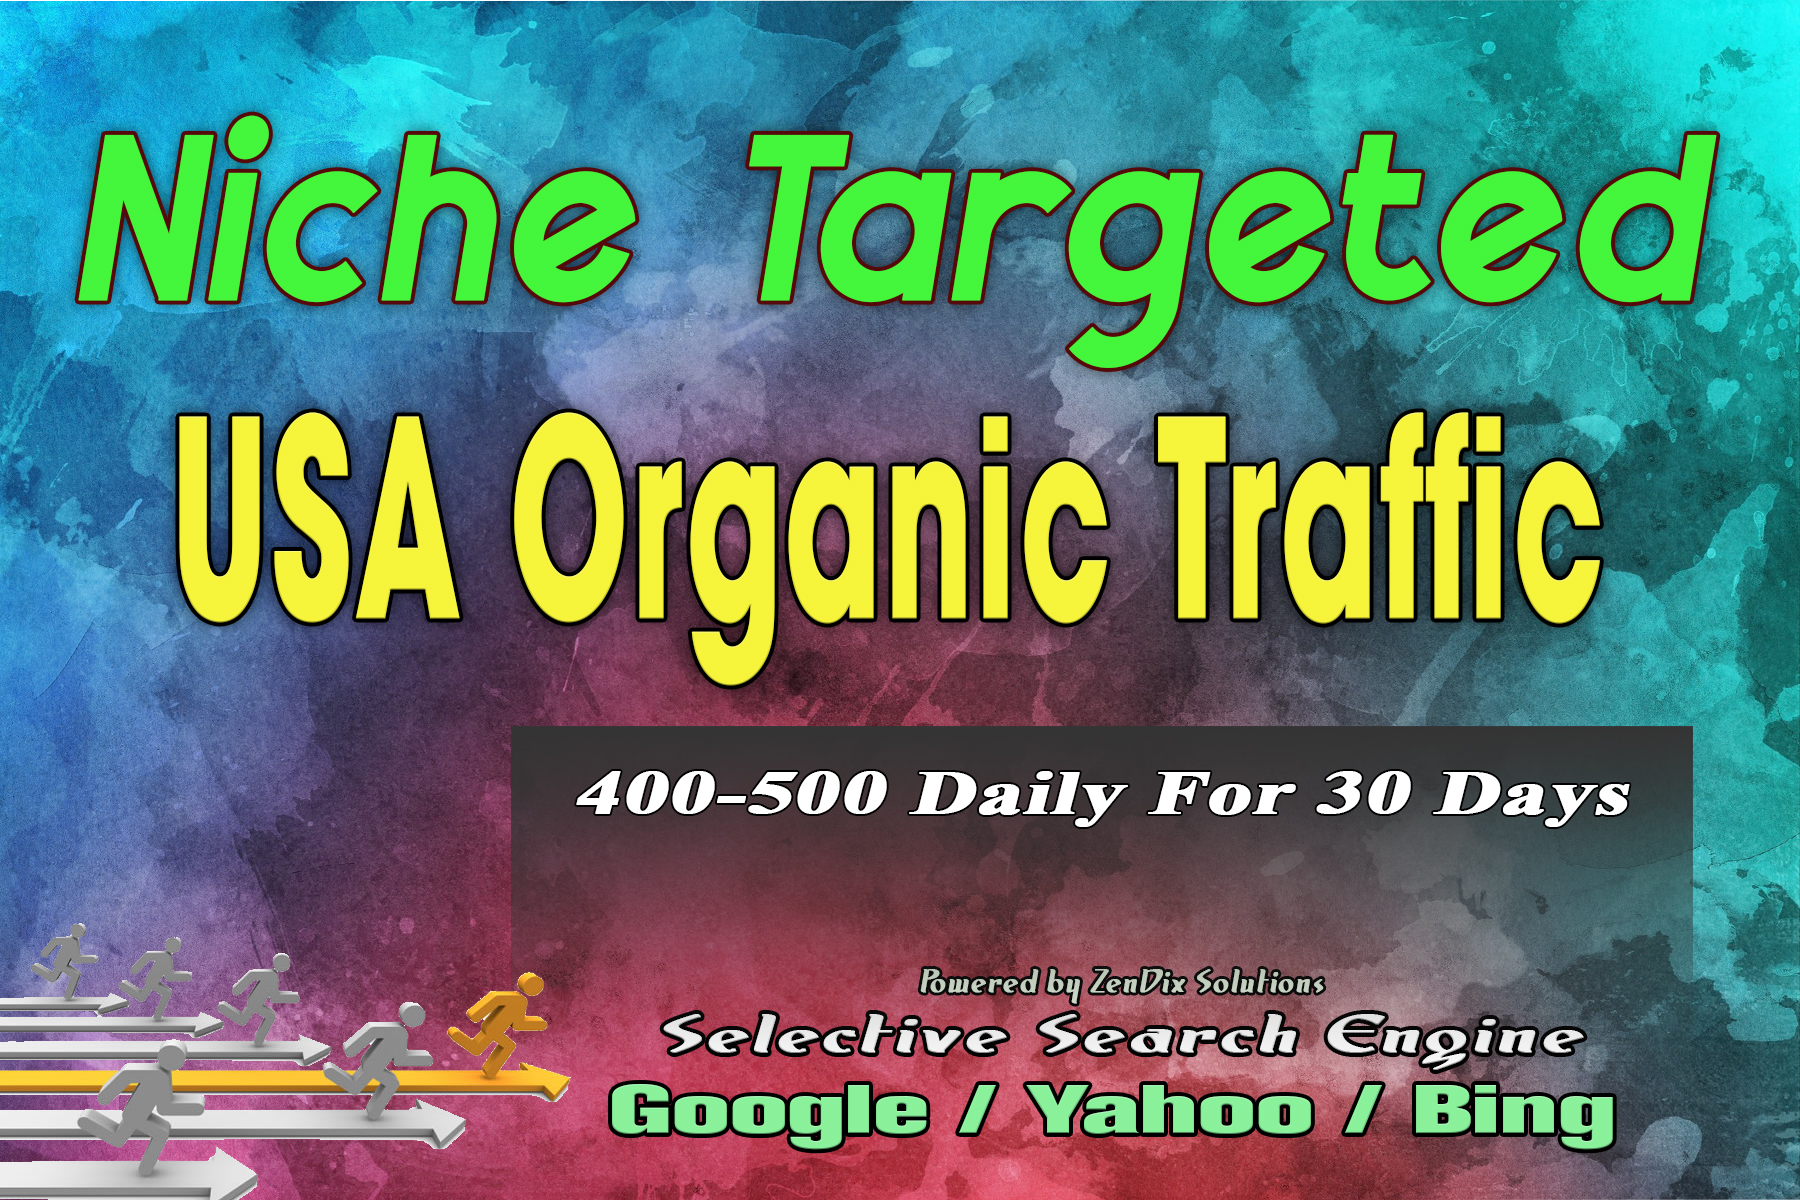 Send USA Niche Targeted Organic Traffic